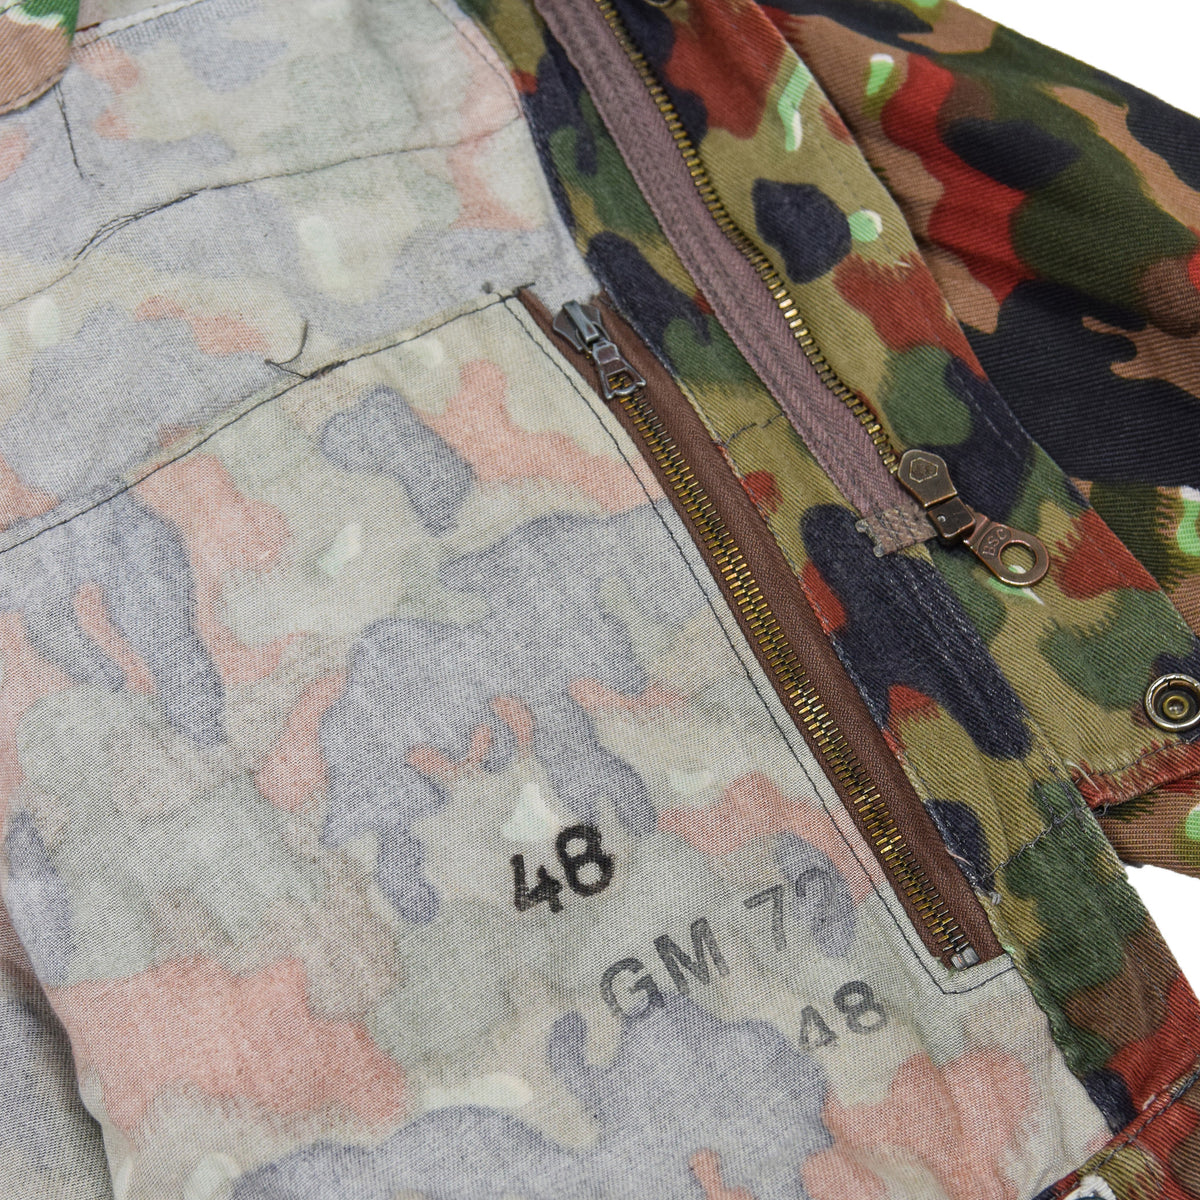 Vintage 70s Swiss Army Alpenflage Camo Sniper Combat Field Jacket M / L print